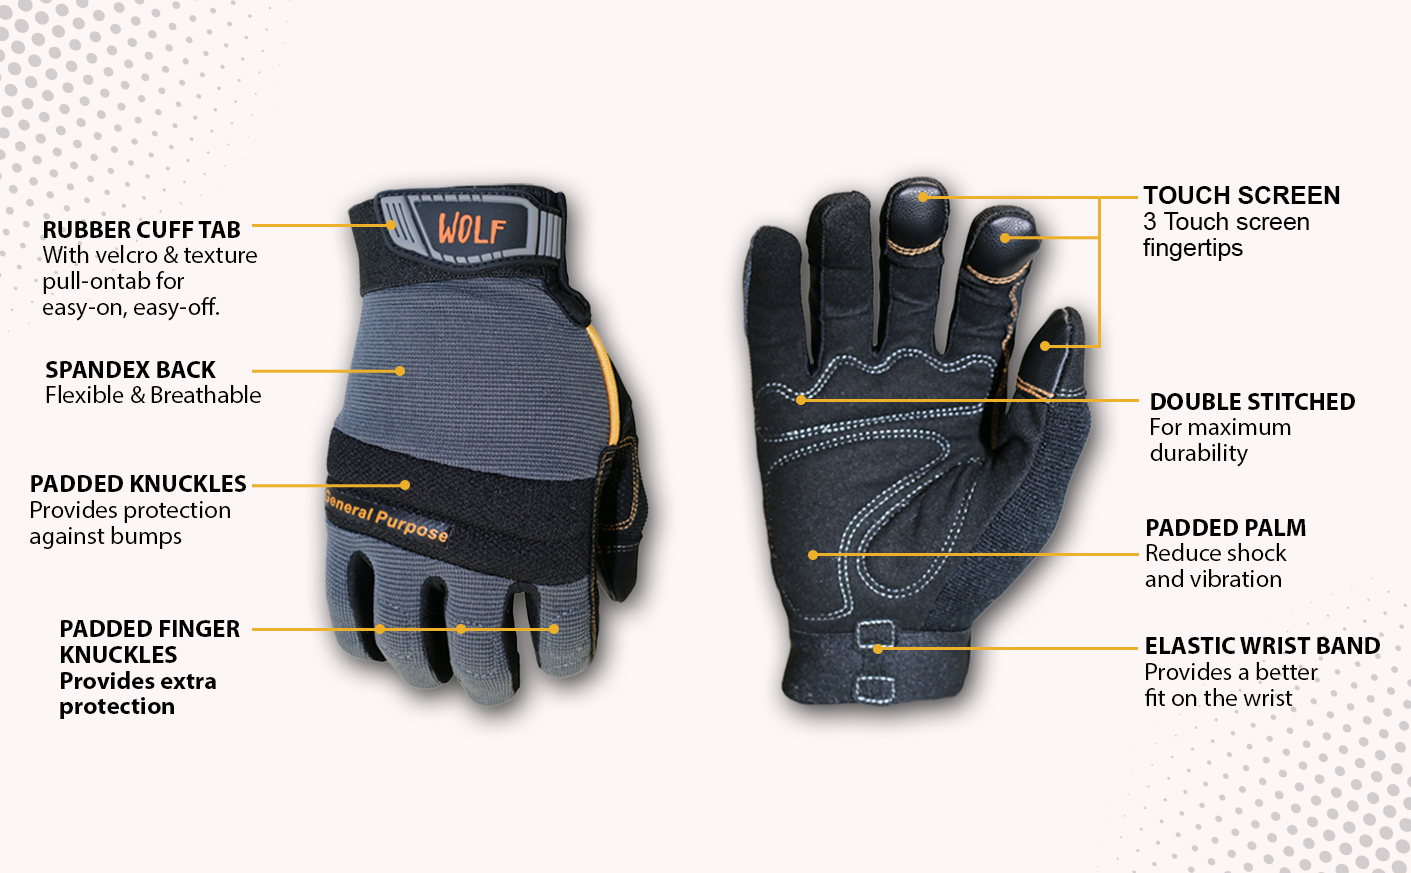 Diablo D1472CF 14 in. x 72 Tooth Cermet Metal and Stainless-Steel Cutting Saw Blade + WOLF Mechanic Stretchable Flex Grip Work Glove Quick One Safety